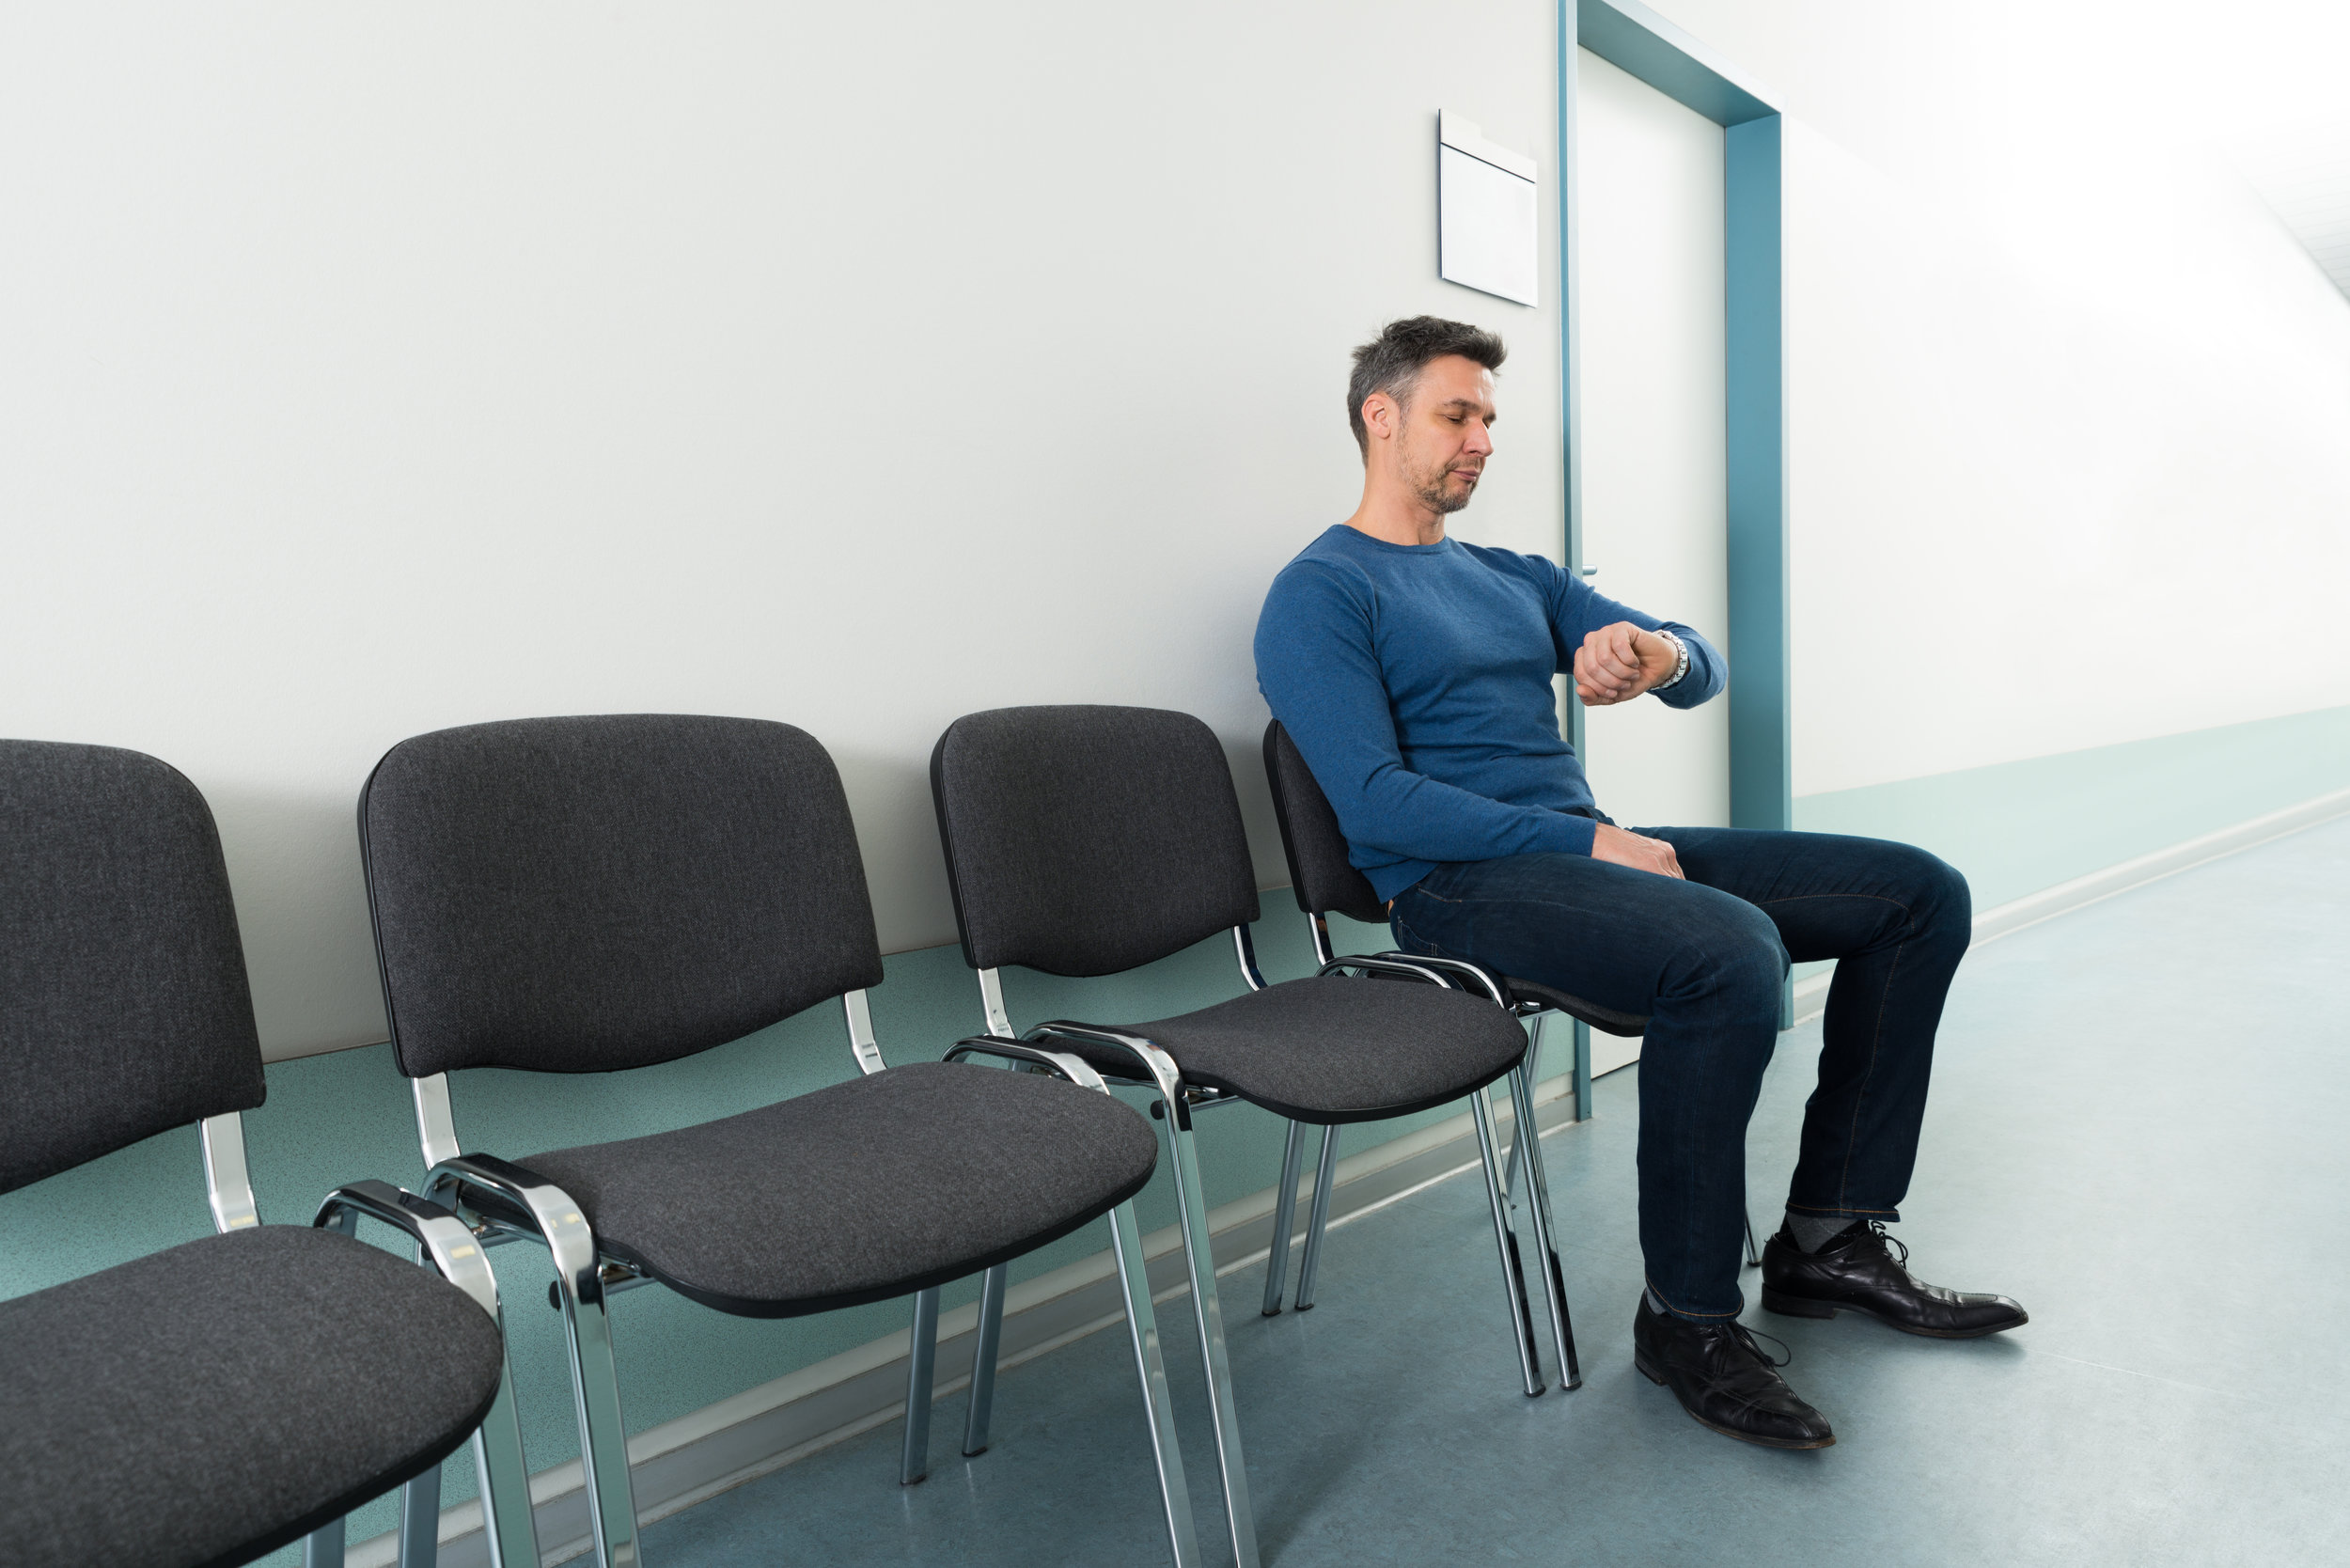 Impatient man in the waiting room waiting for doctor's appointment